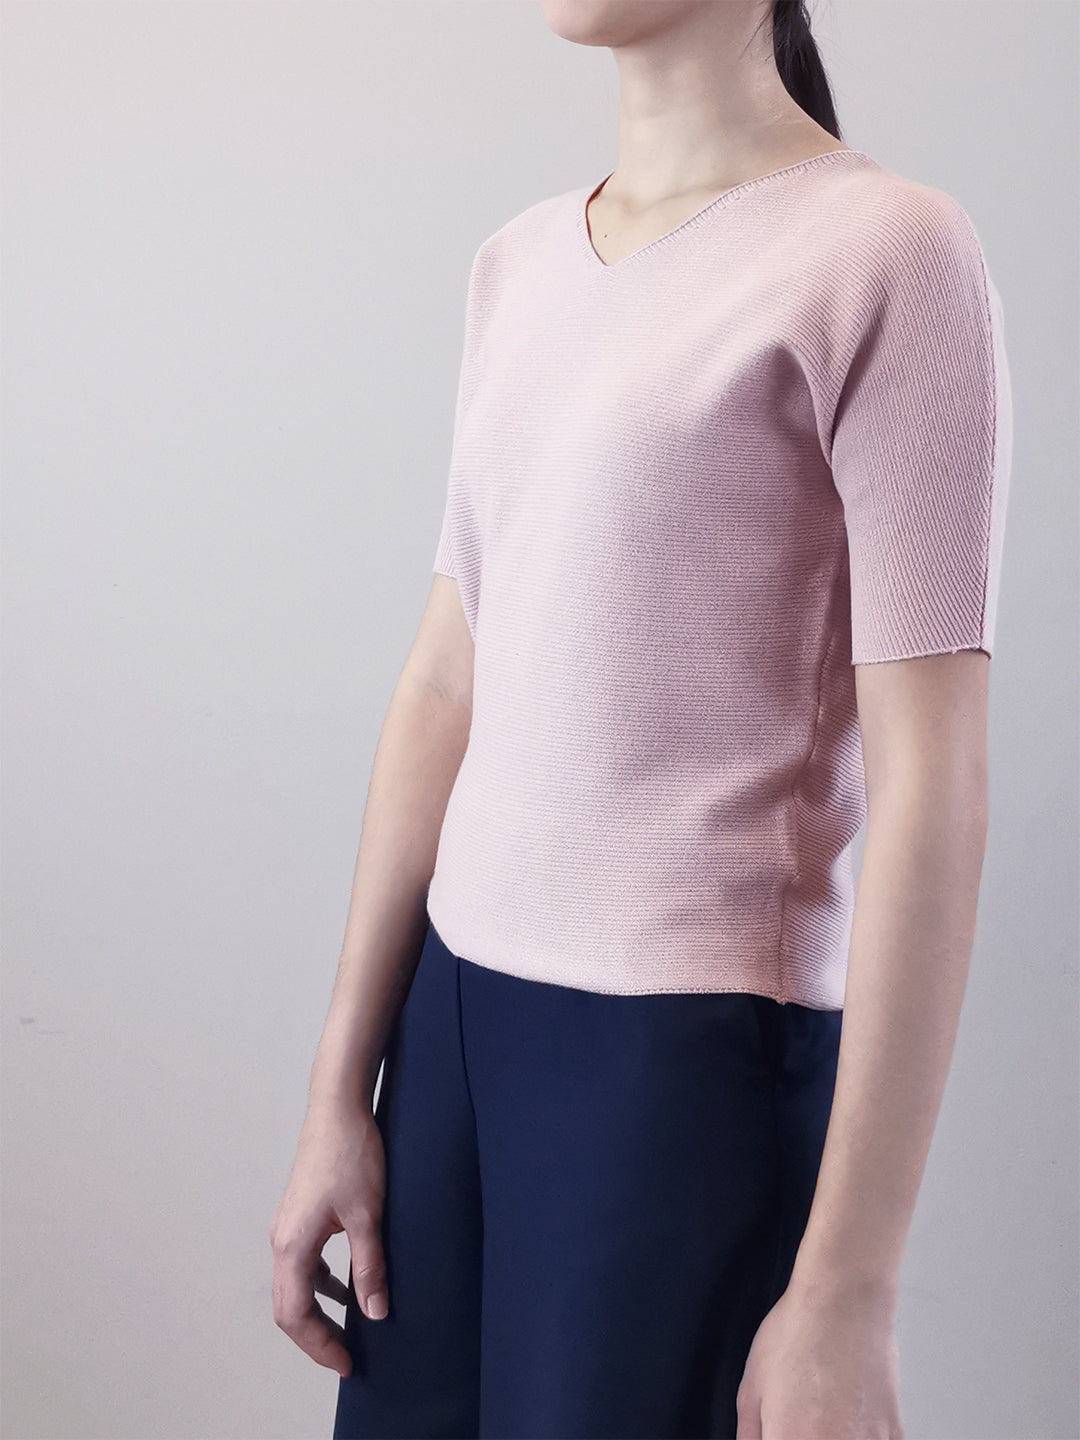 V-Neck Knit Top- Pink